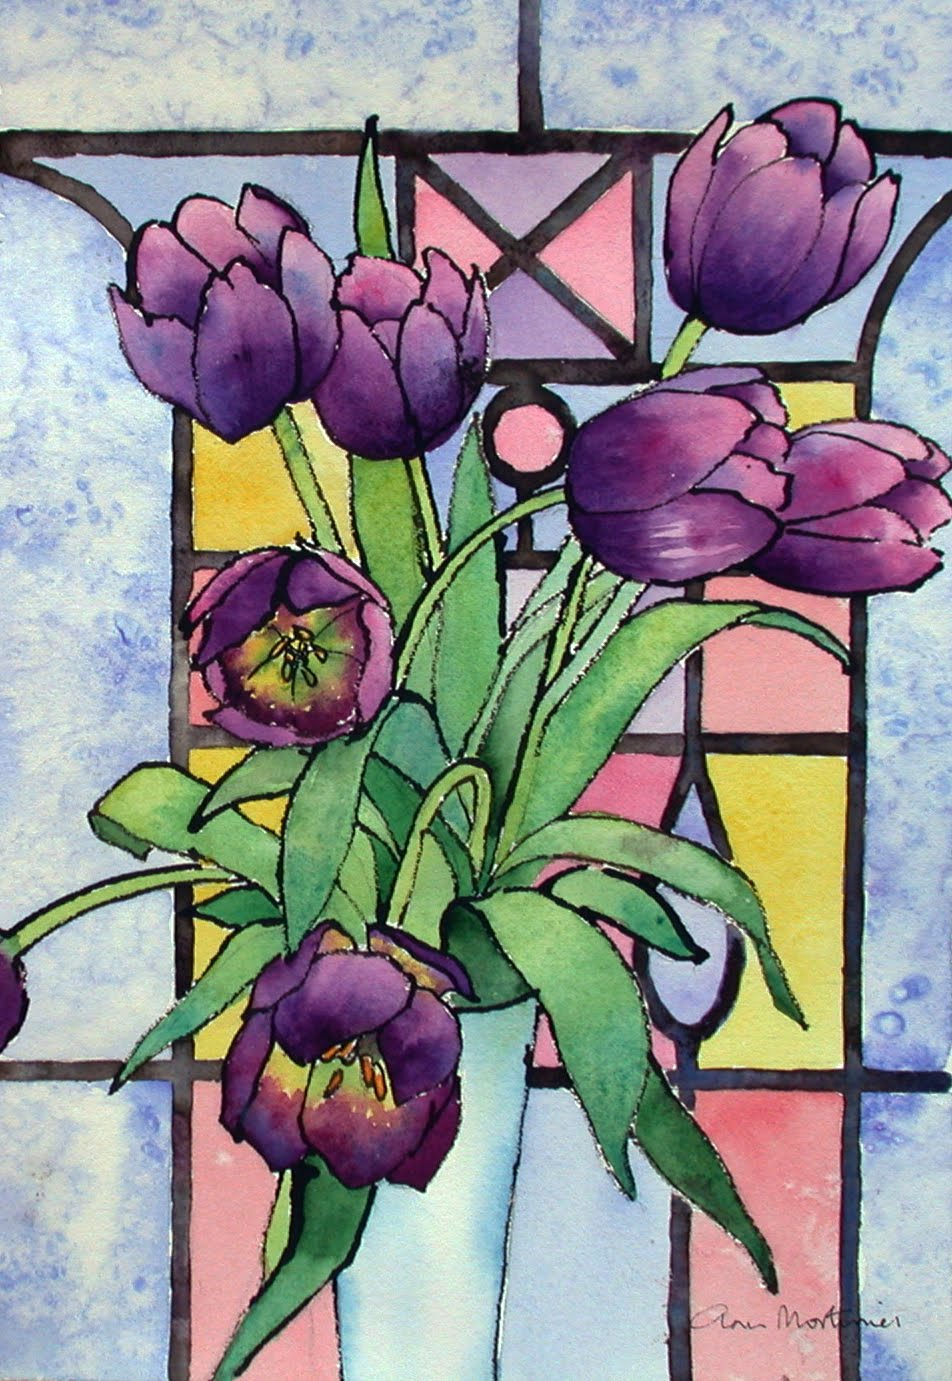 Painting On Glass Windows : Ann mortimer s painting february